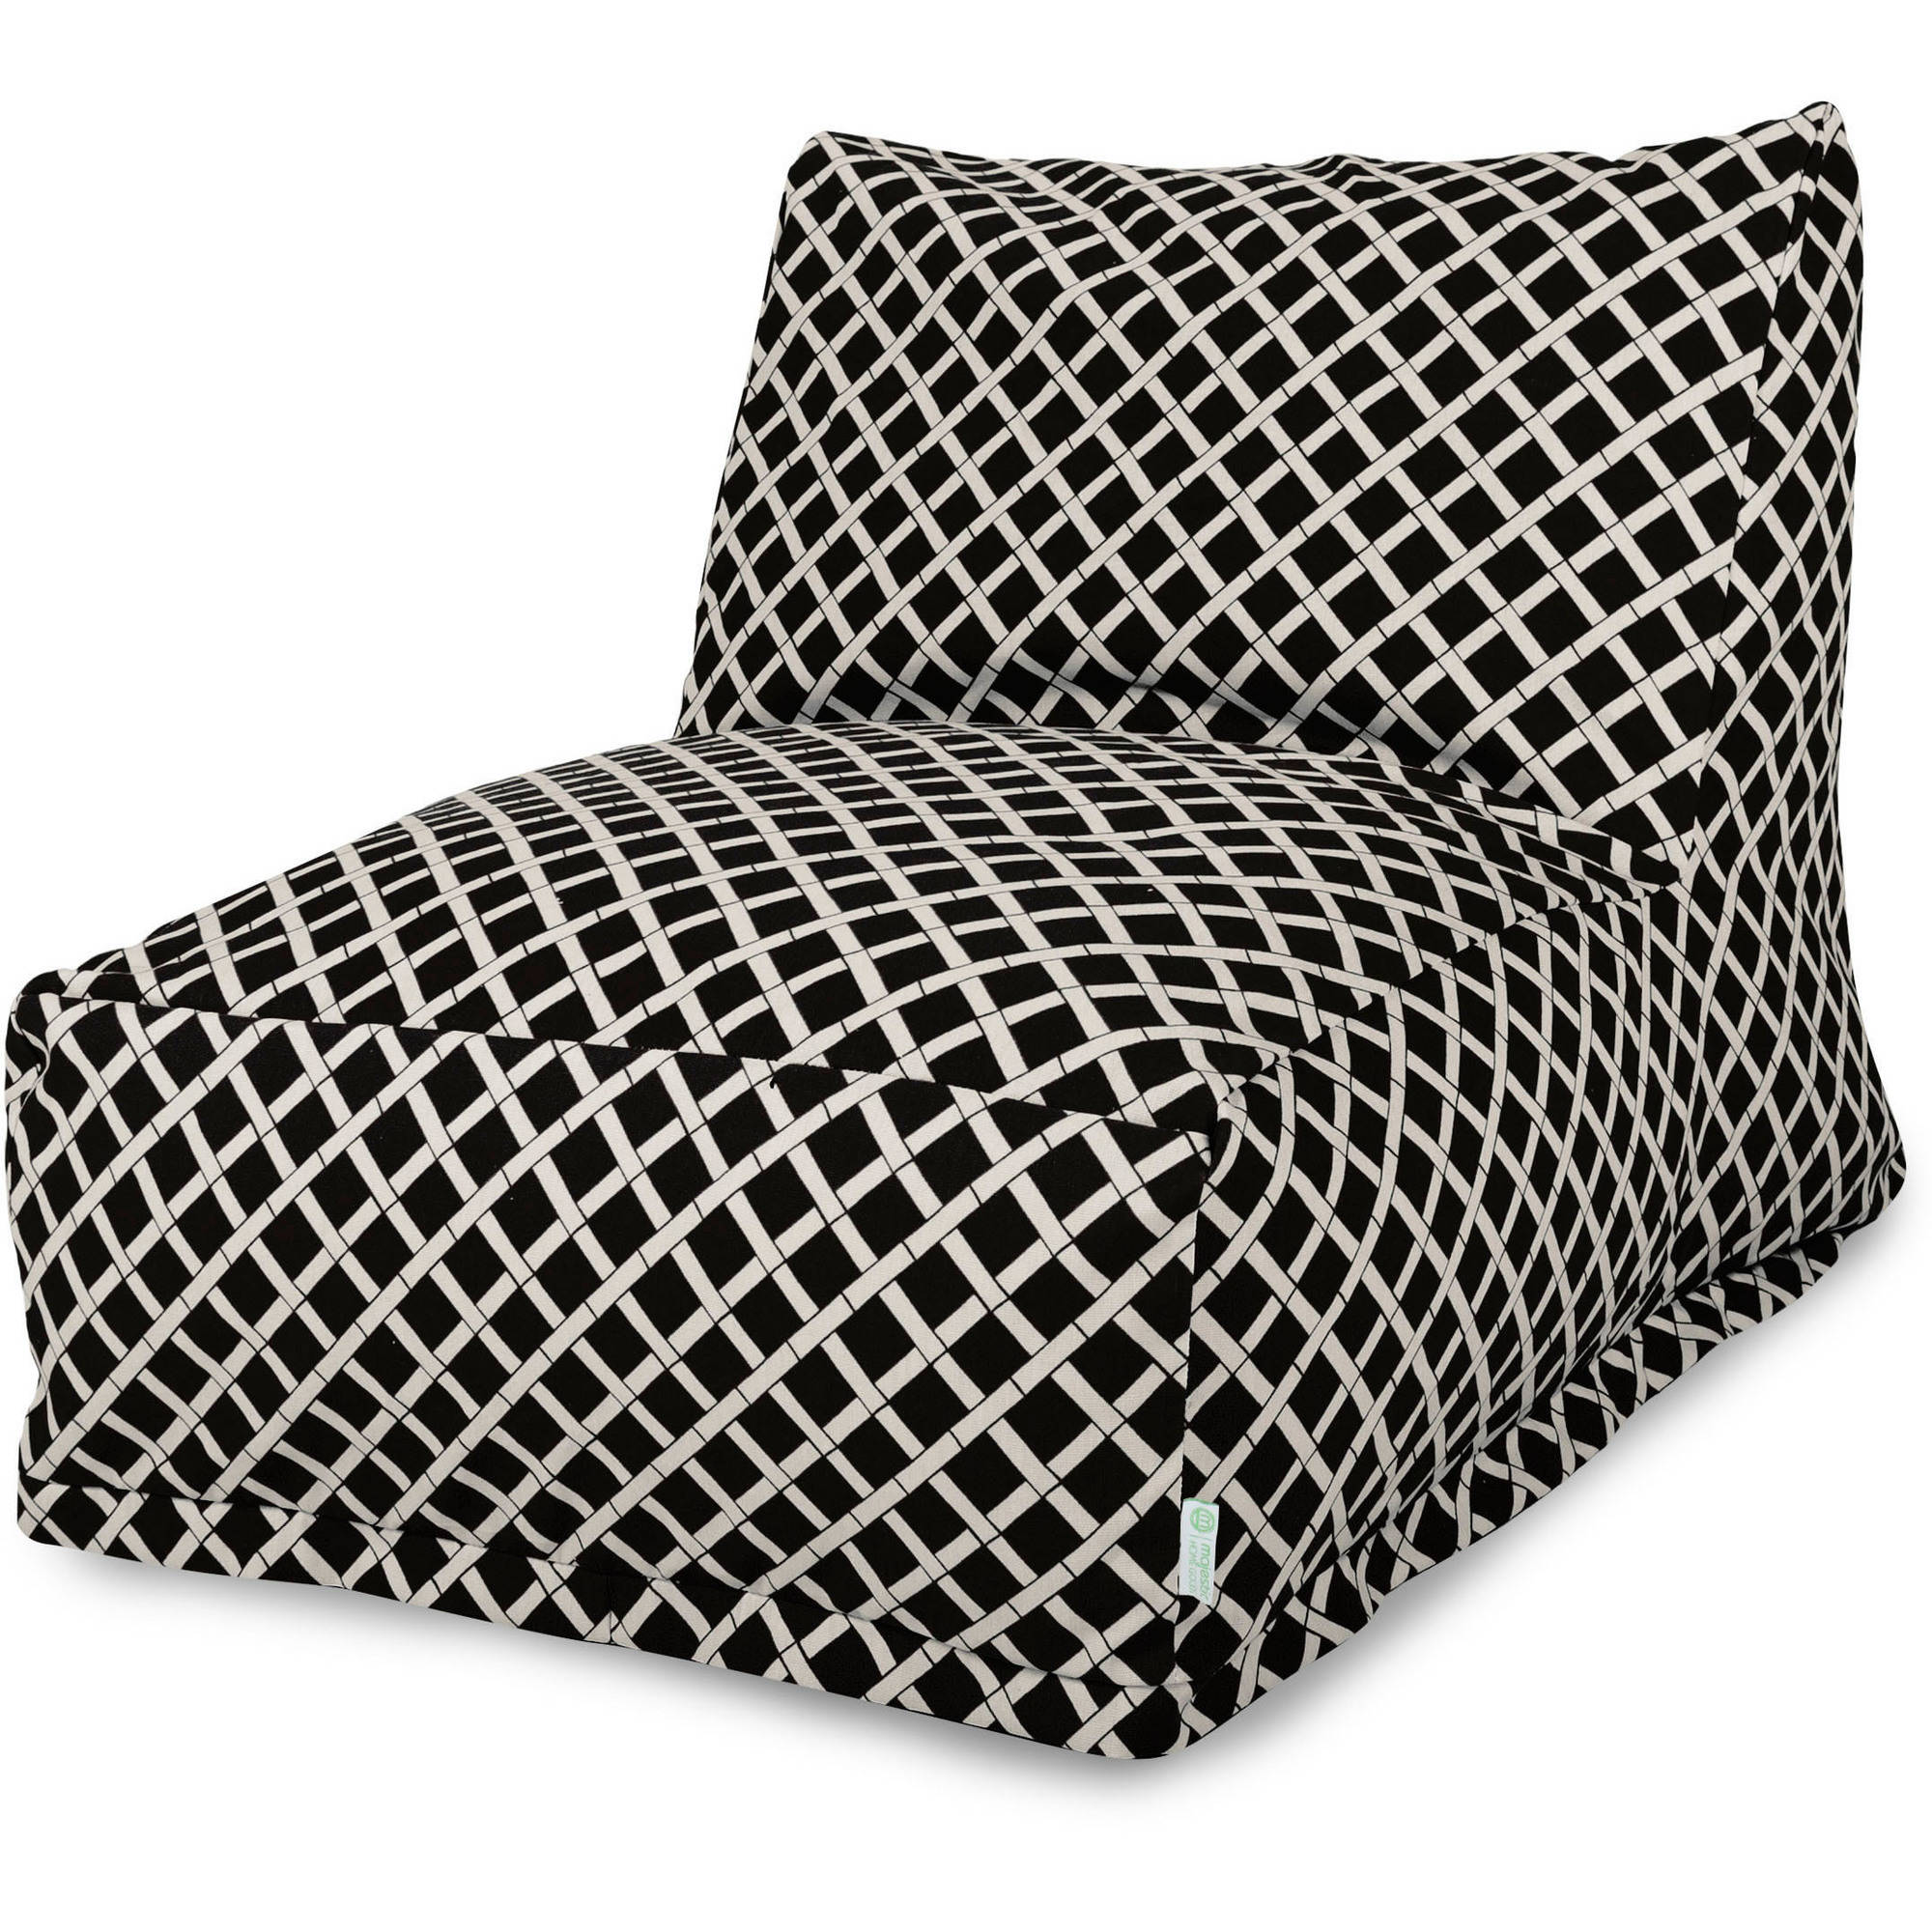 Majestic Home Goods Bamboo Bean Bag Chair Lounger, Indoor/Outdoor